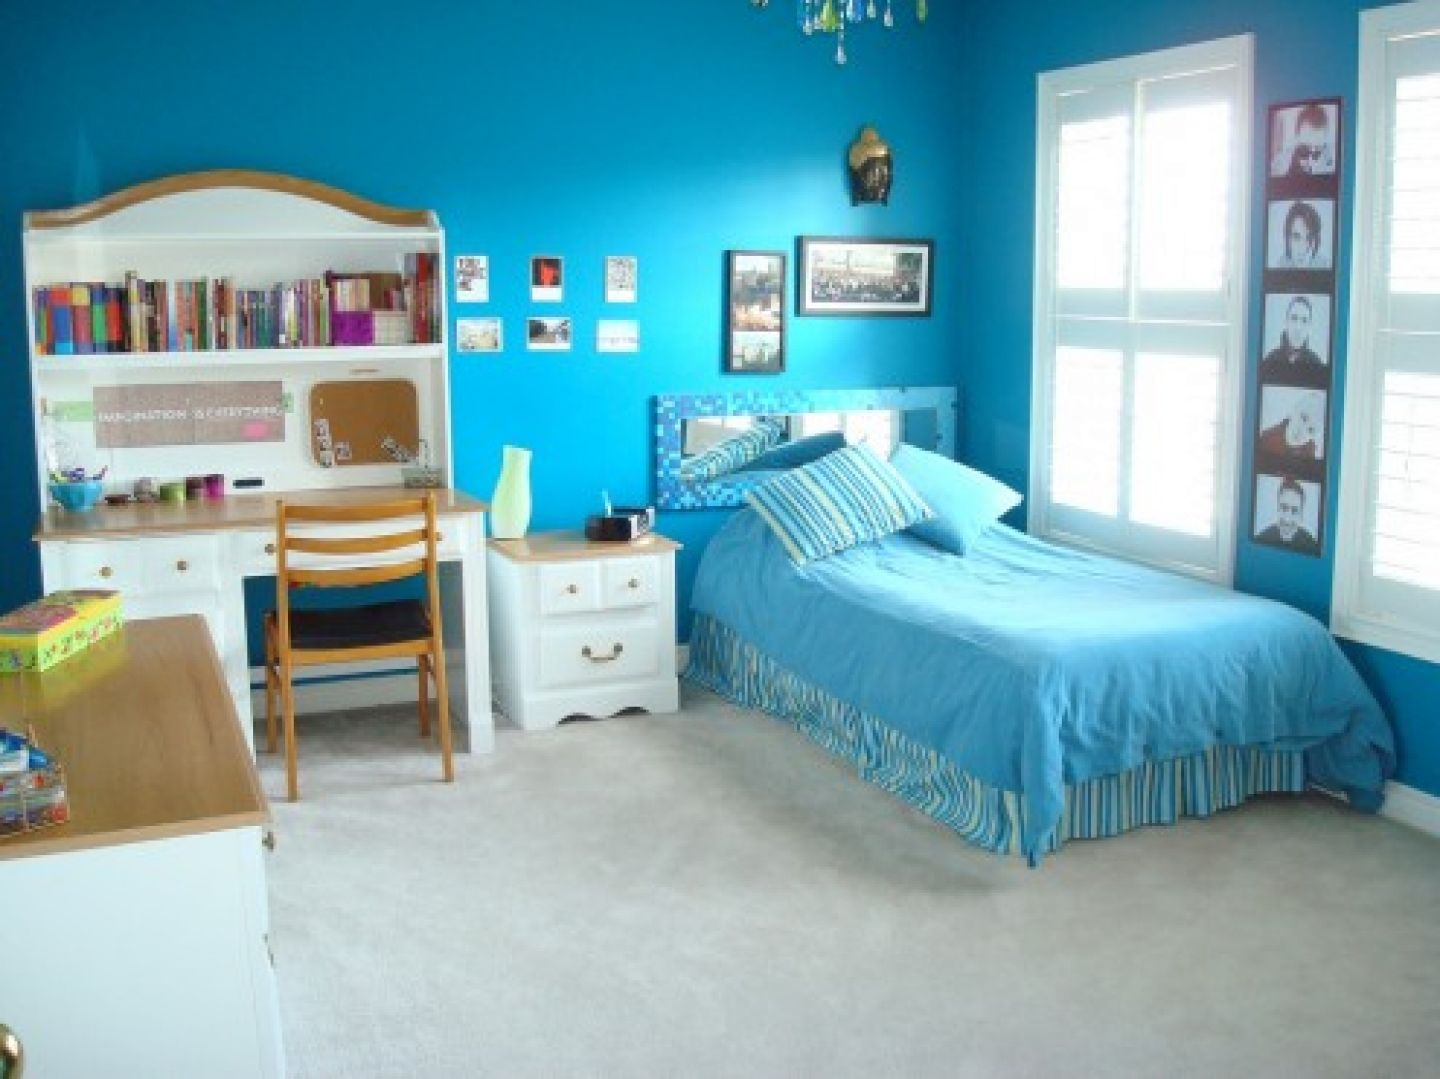 Blue bedroom design for teenage girls - Awesome Teen Girl Bedroom Decorating Ideas With Blue Bedding